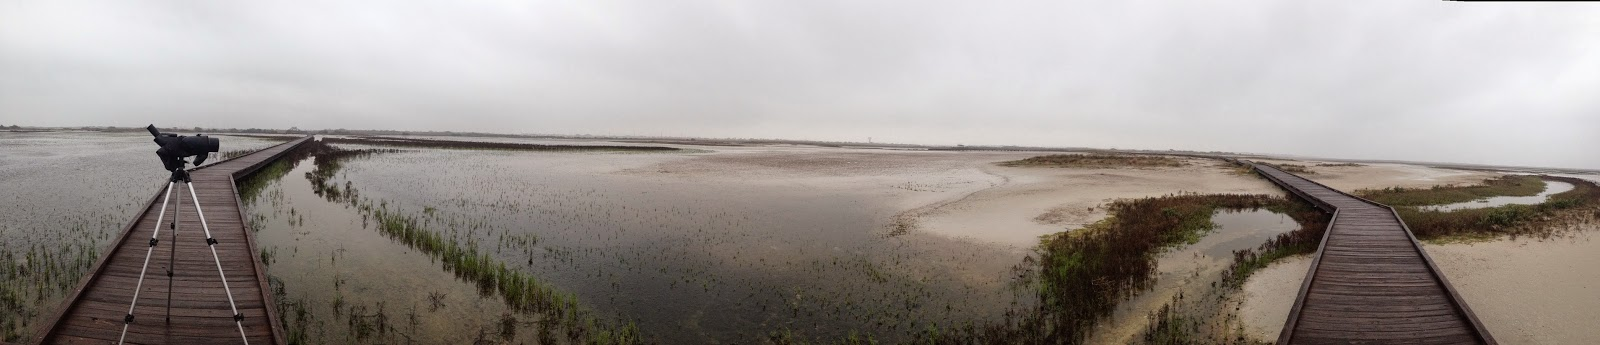 Panoramic view of the boardwalk at Charlie's Pasture